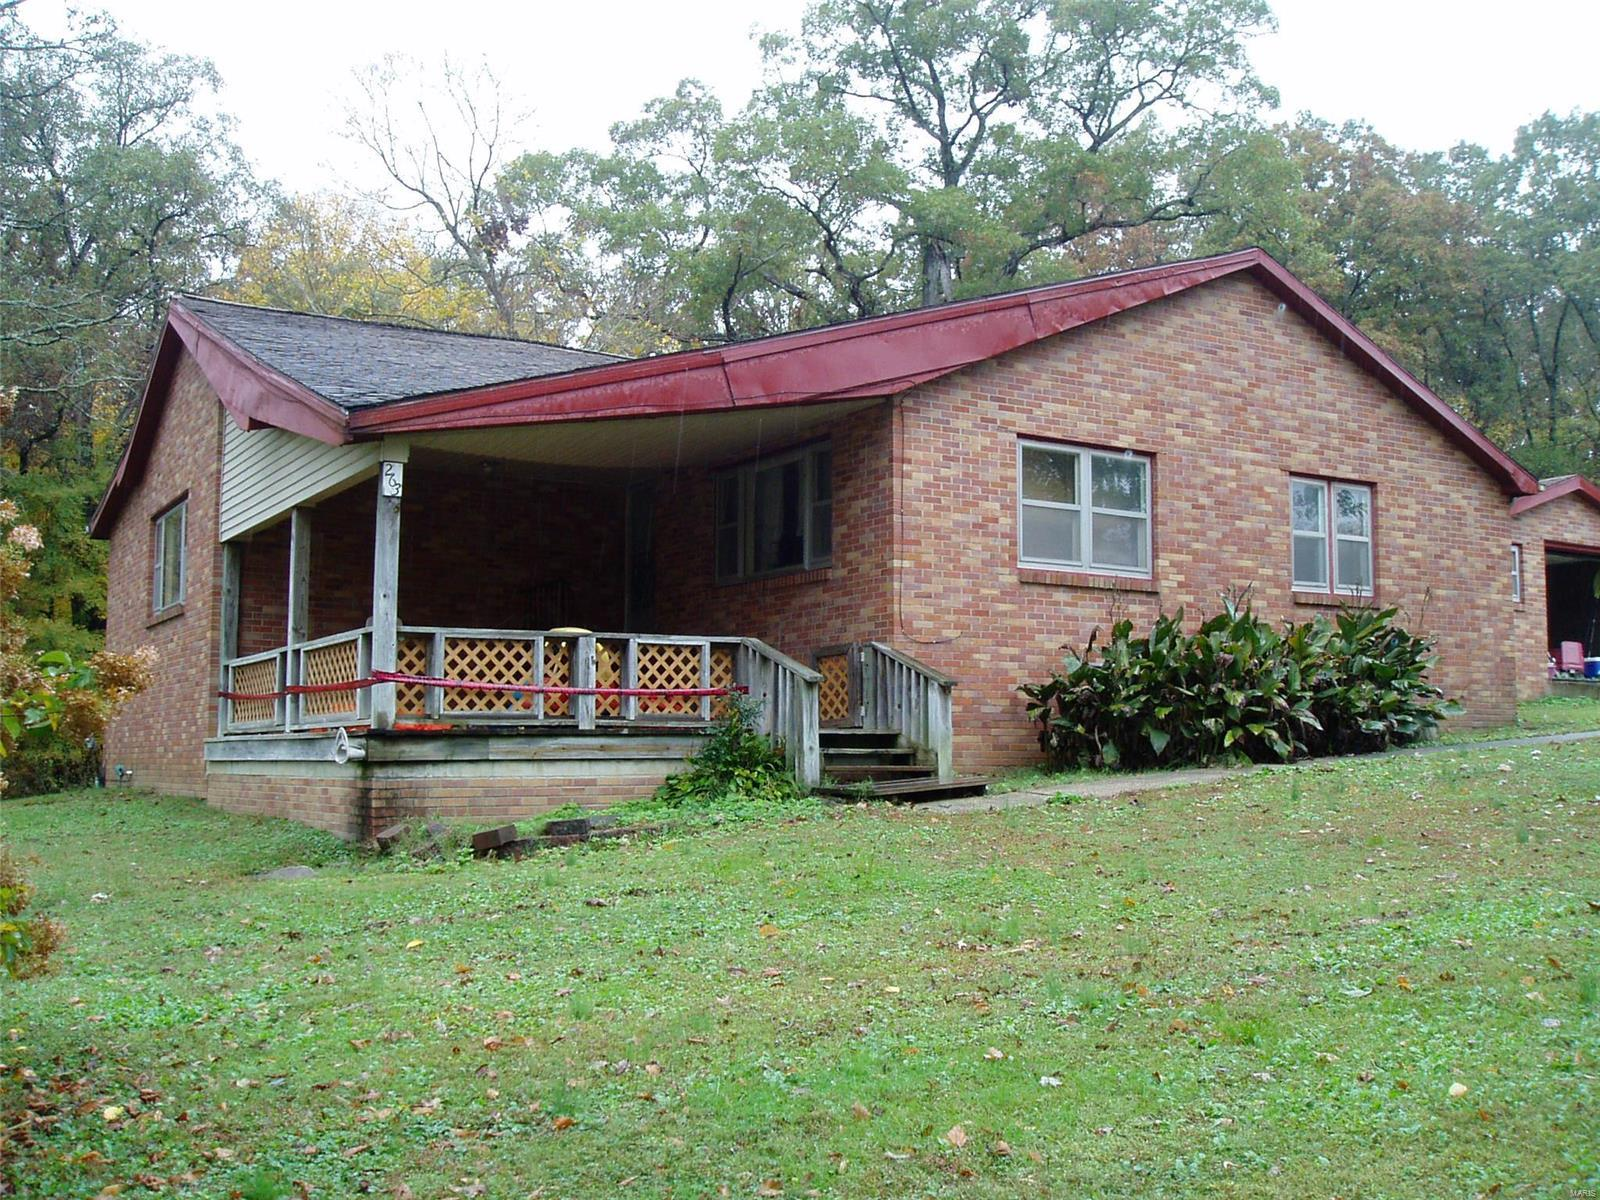 263 W. Schumacher ave Property Photo - Puxico, MO real estate listing